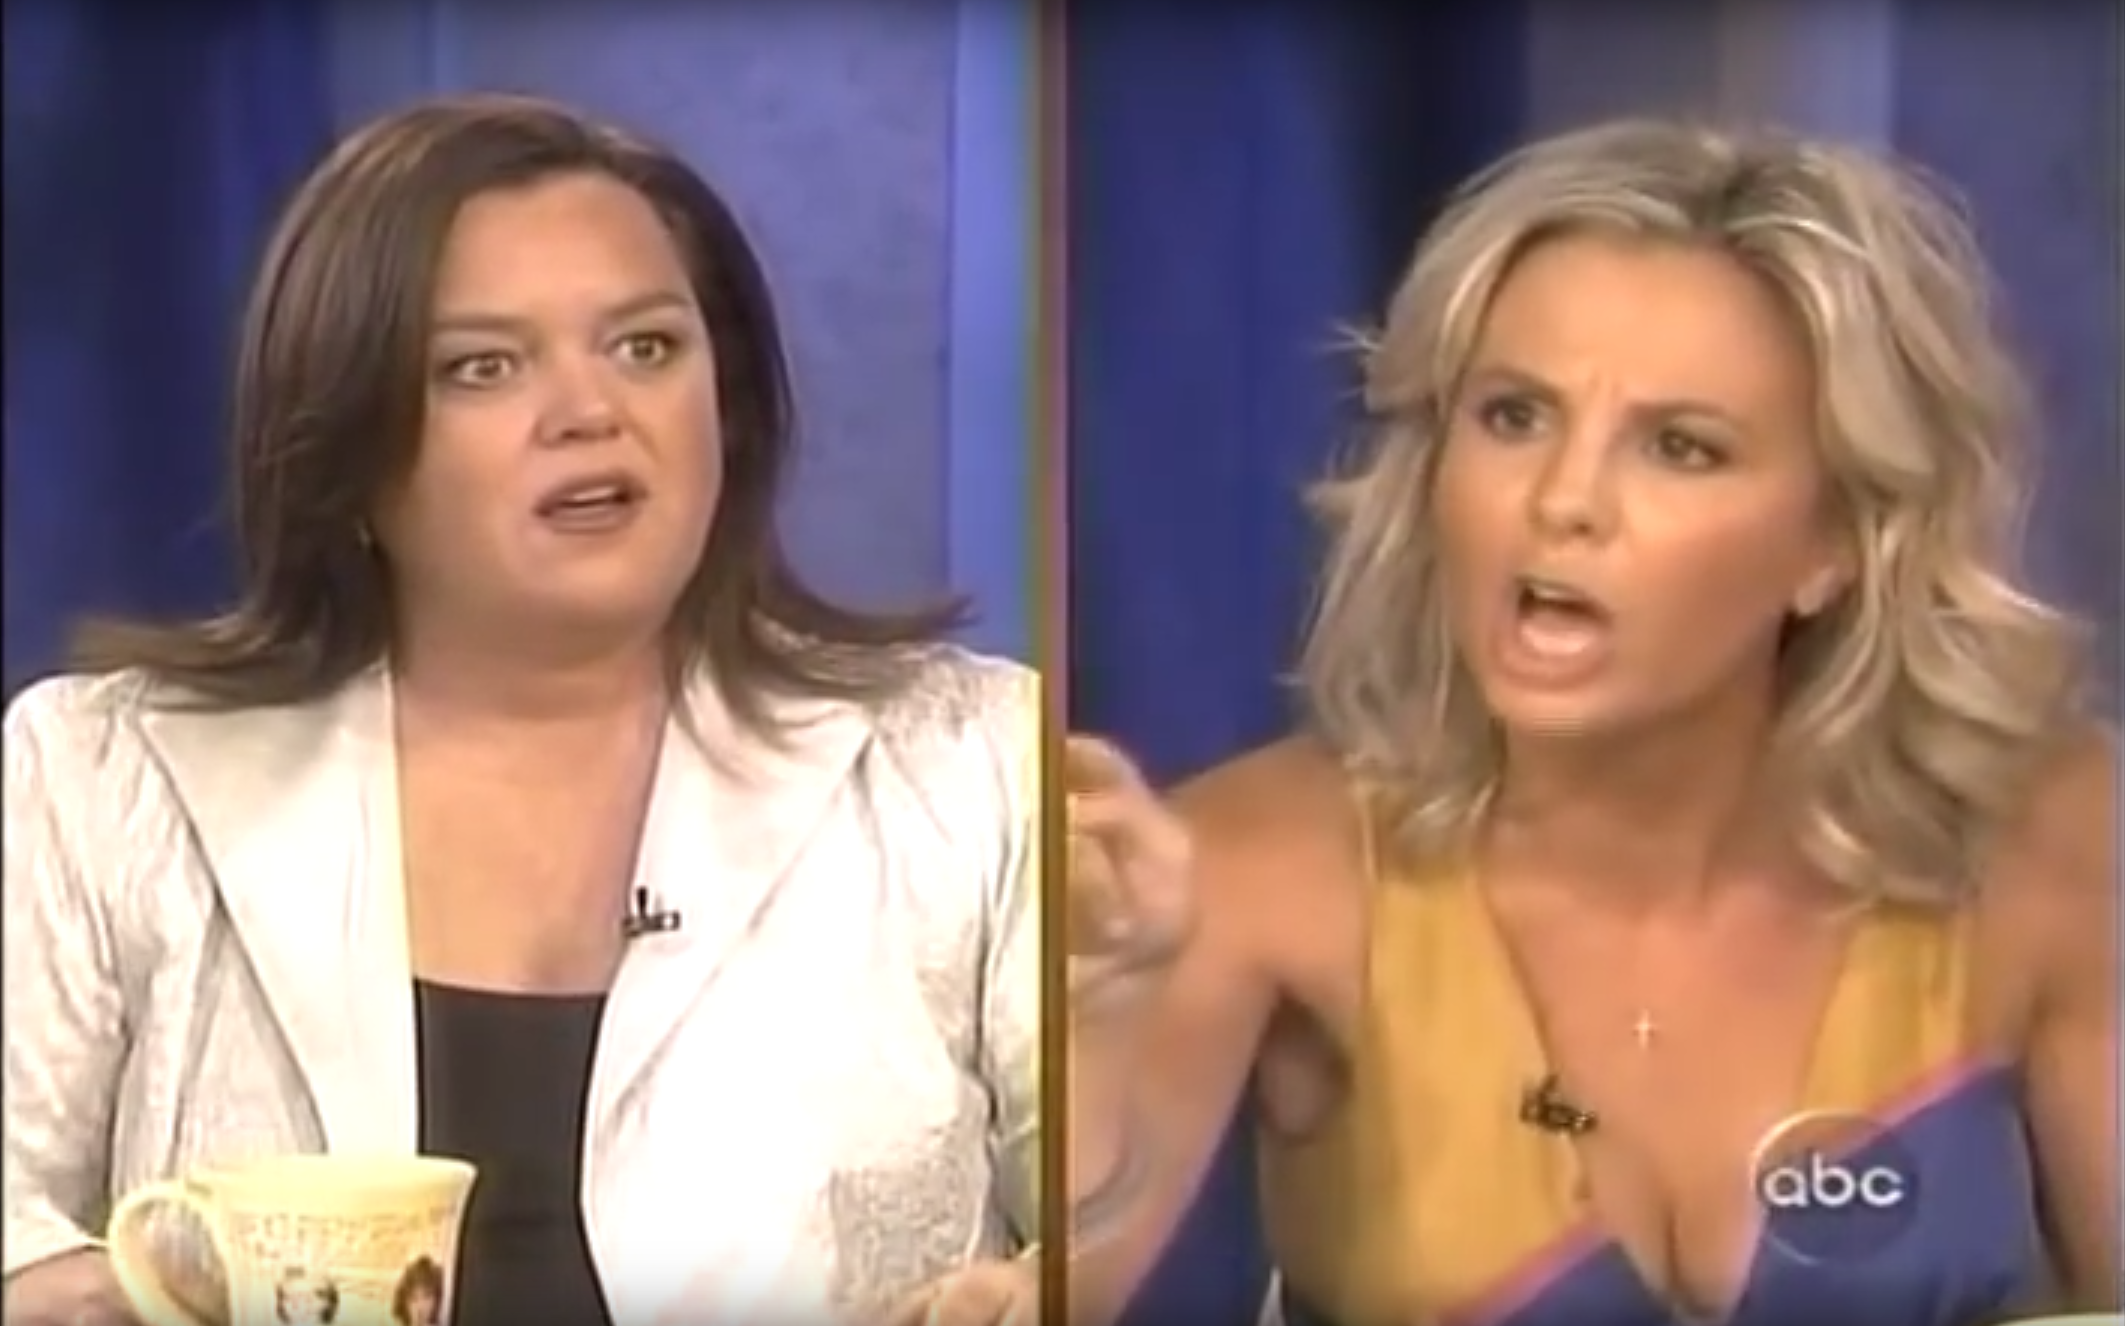 Rosie O'Donnell Elisabeth Hasselbeck: The War Is Over!